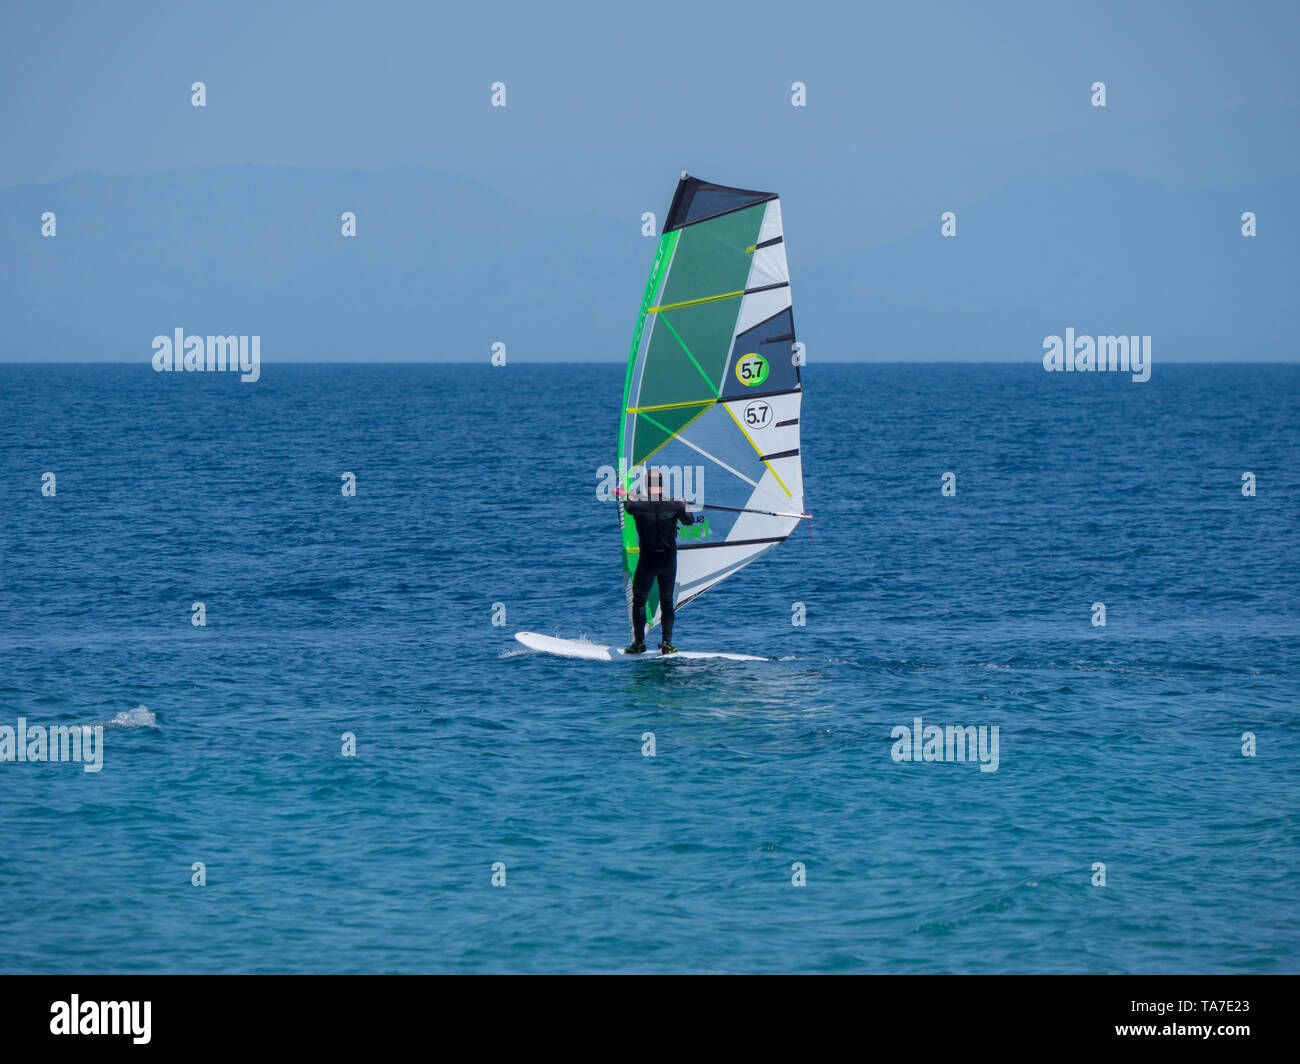 anonymous person with wind surfing in clear open sea ocean - Stock Image